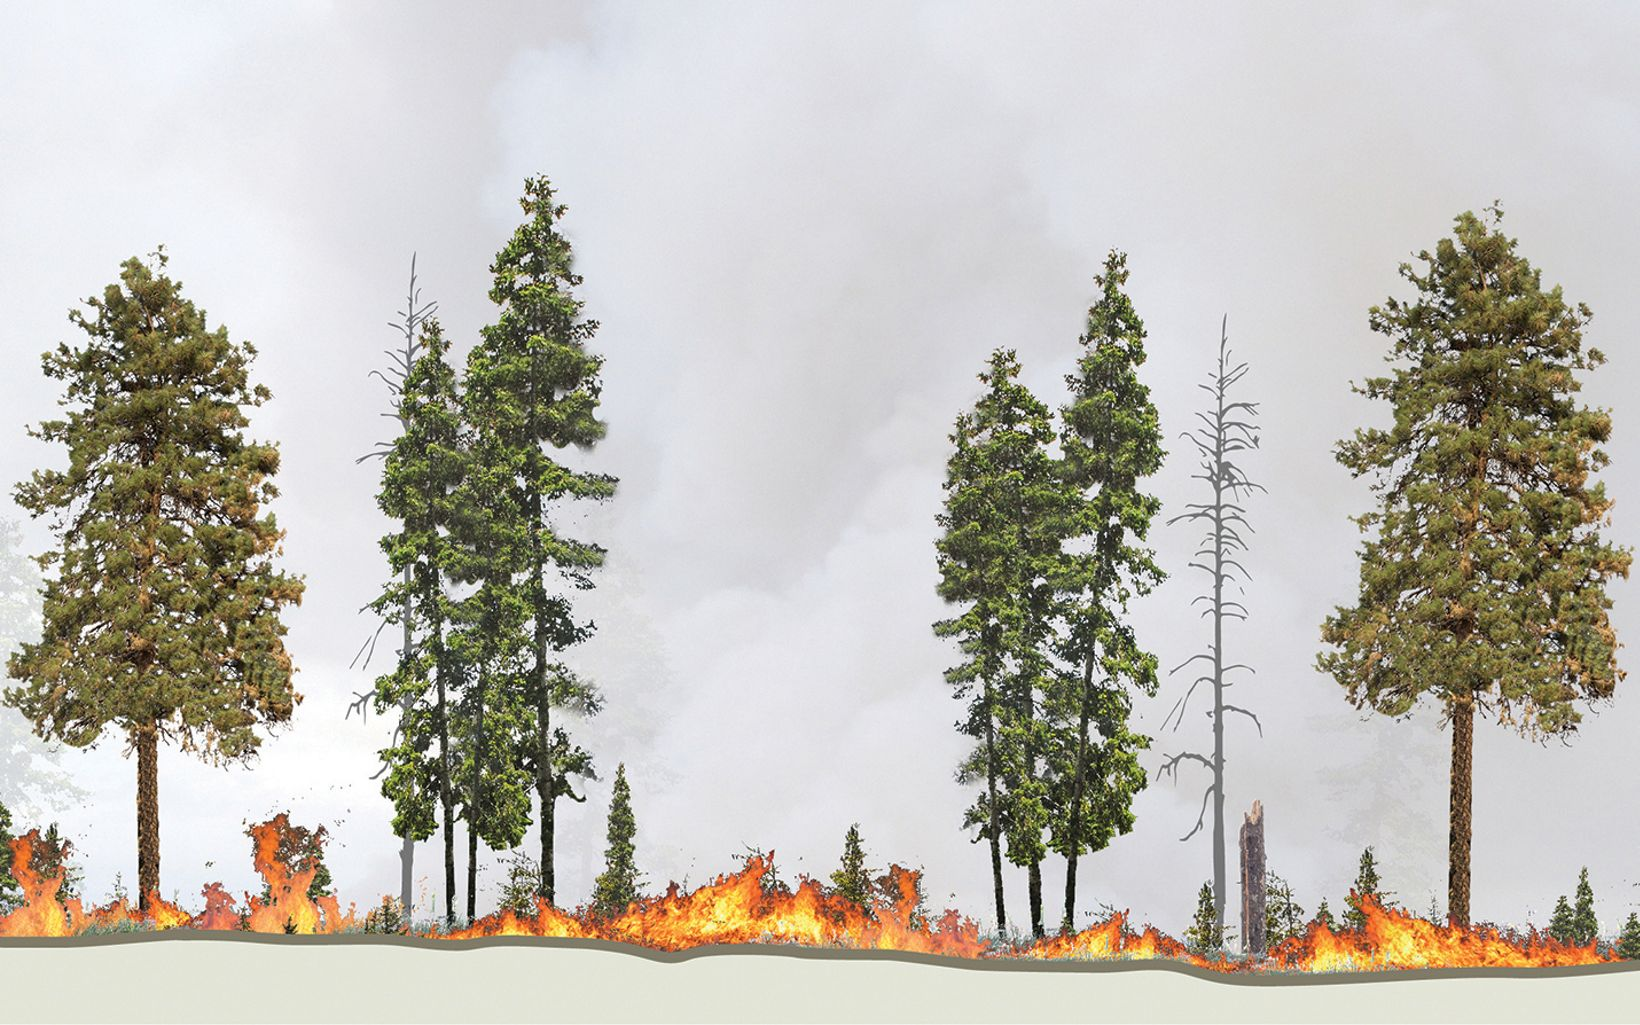 A thinned stand of trees with fire only on the ground in and low branches.